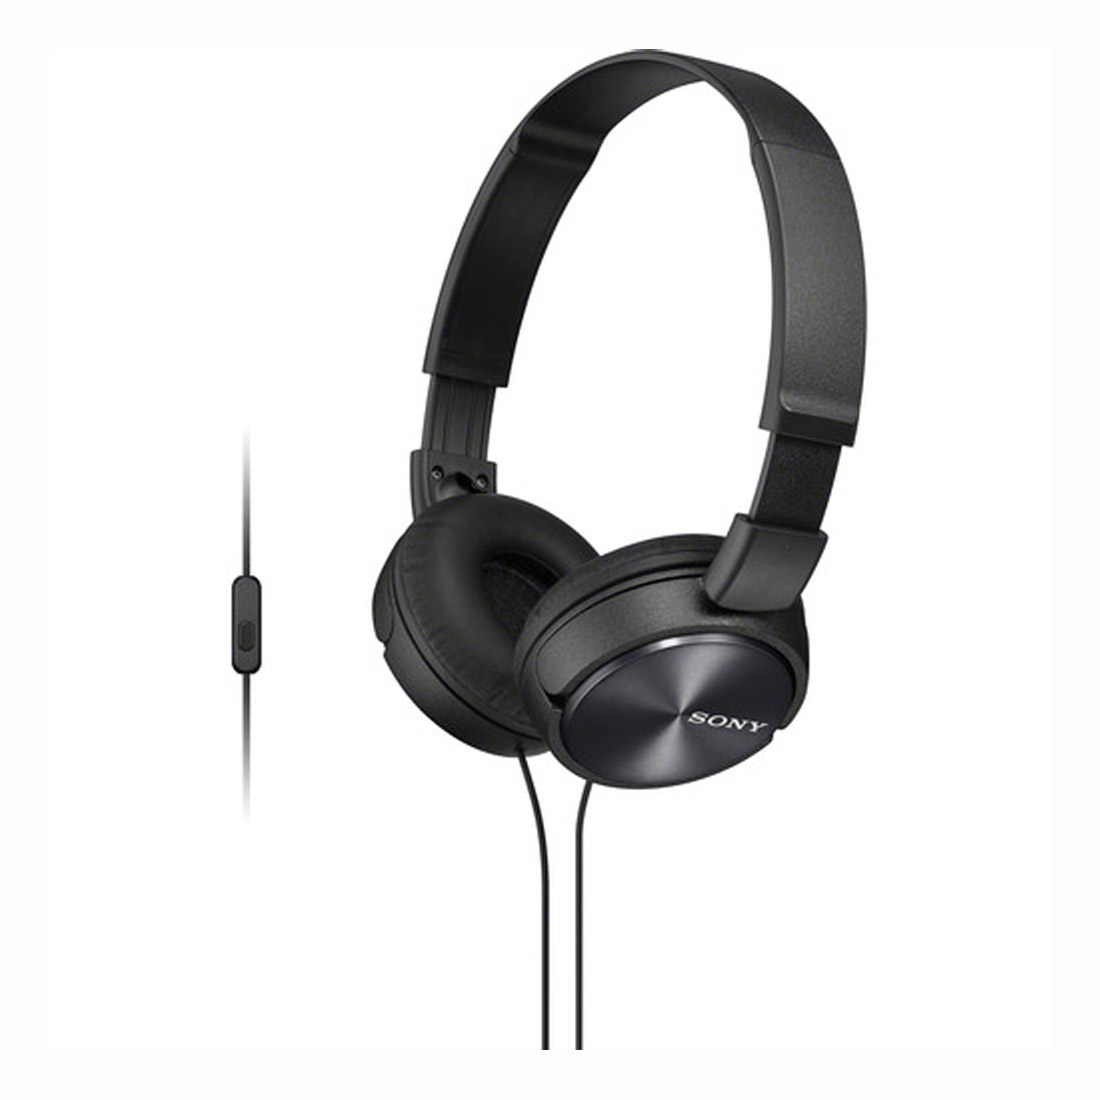 Sony MDR-ZX310AP Stereo Over-Ear Headphones - Black